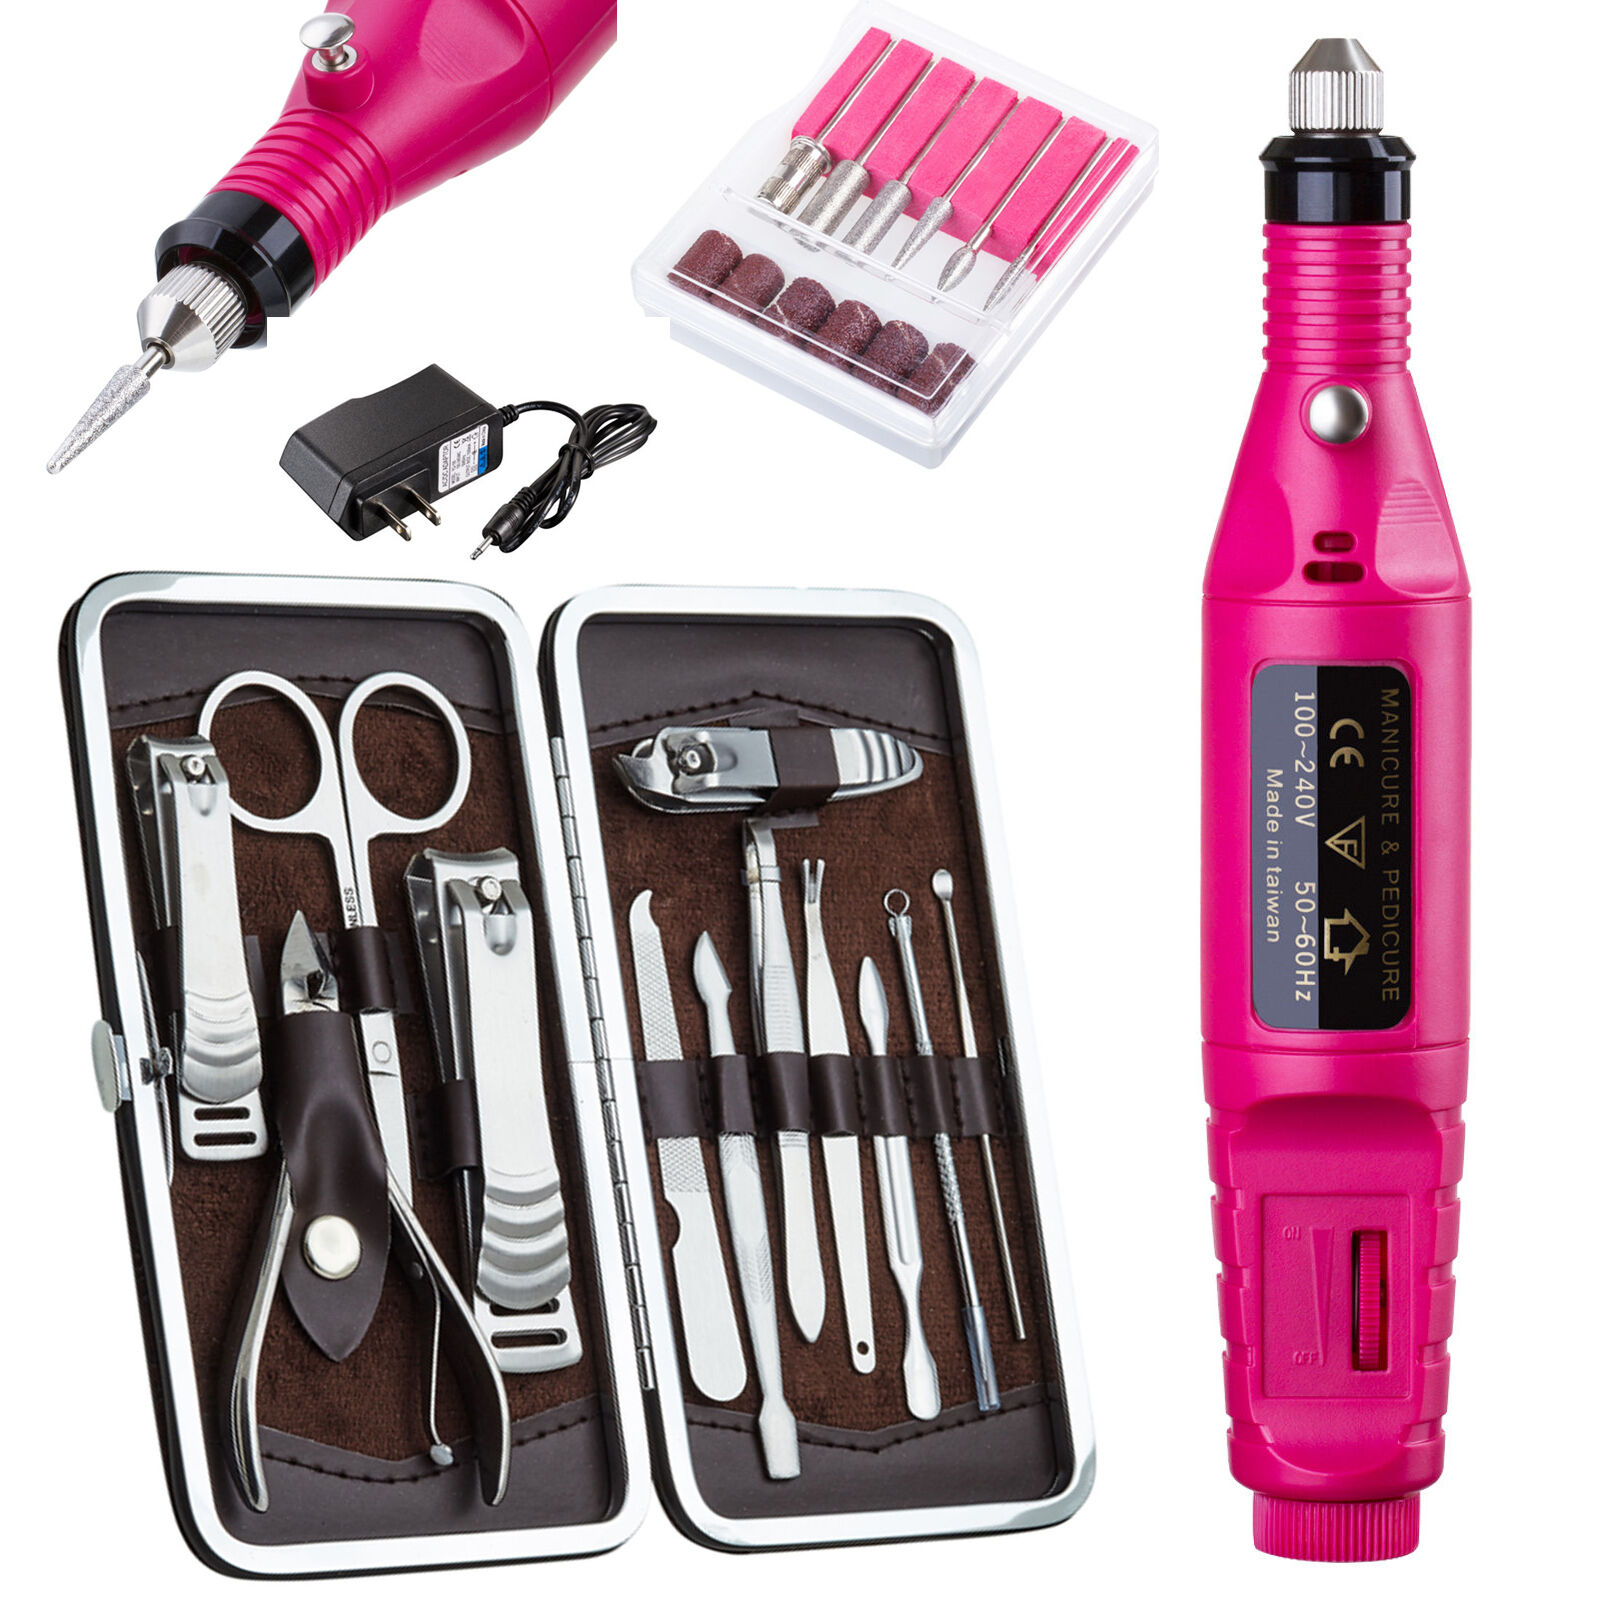 NEW PROFESSIONAL ELECTRIC NAIL FILE DRILL Manicure Tool Pedicure ...